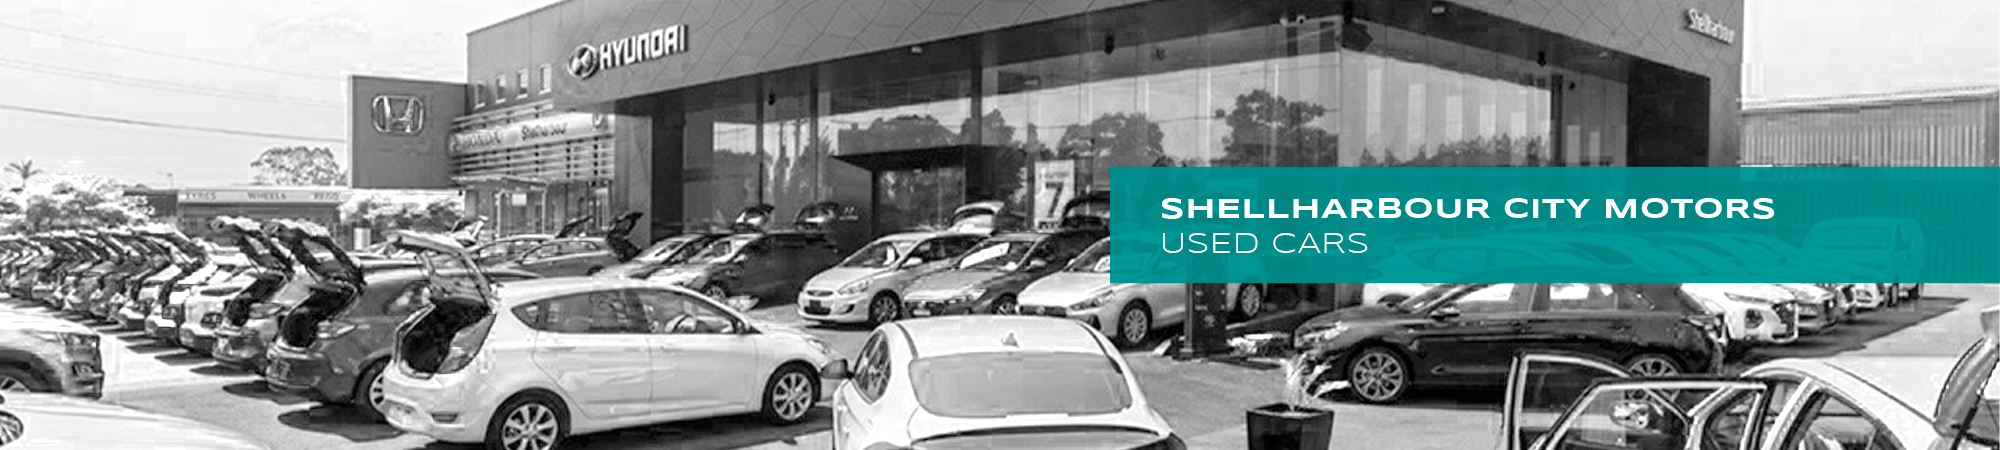 ShellHarbour City Motors